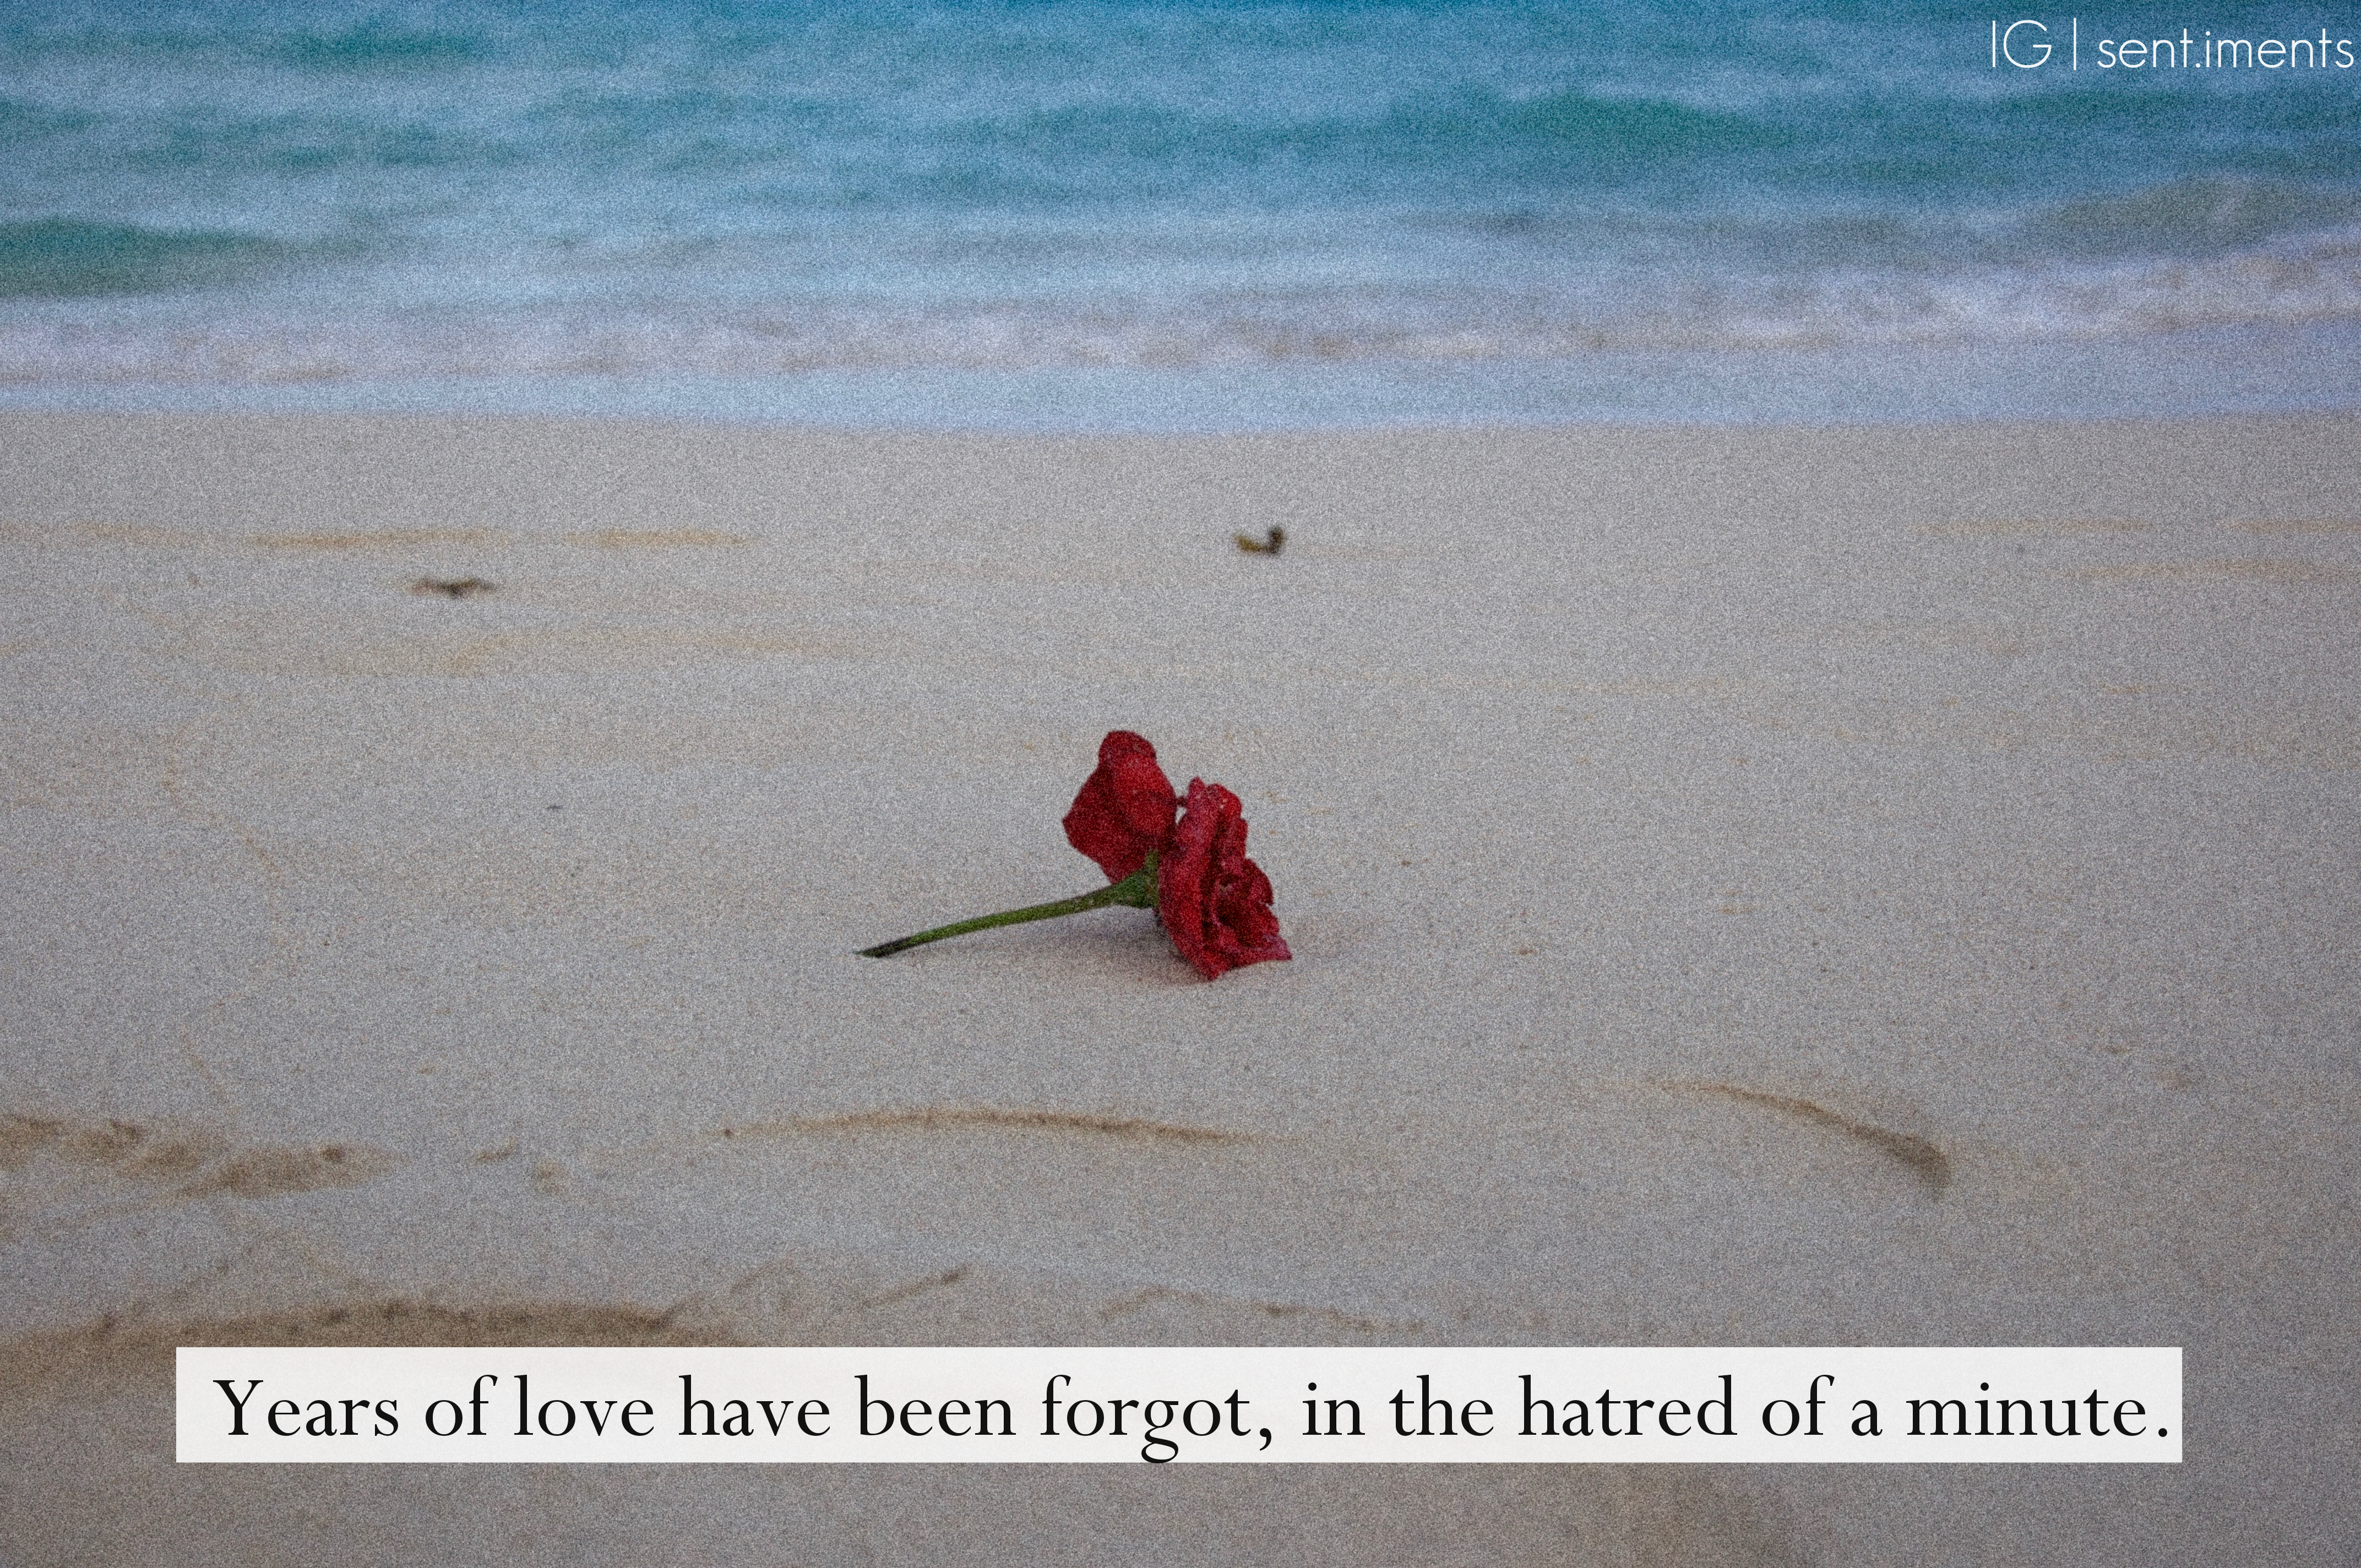 """Years of love have been forgot, in the hatred of a minute"" by Edgar Allan Poe [4288 X 2848]"